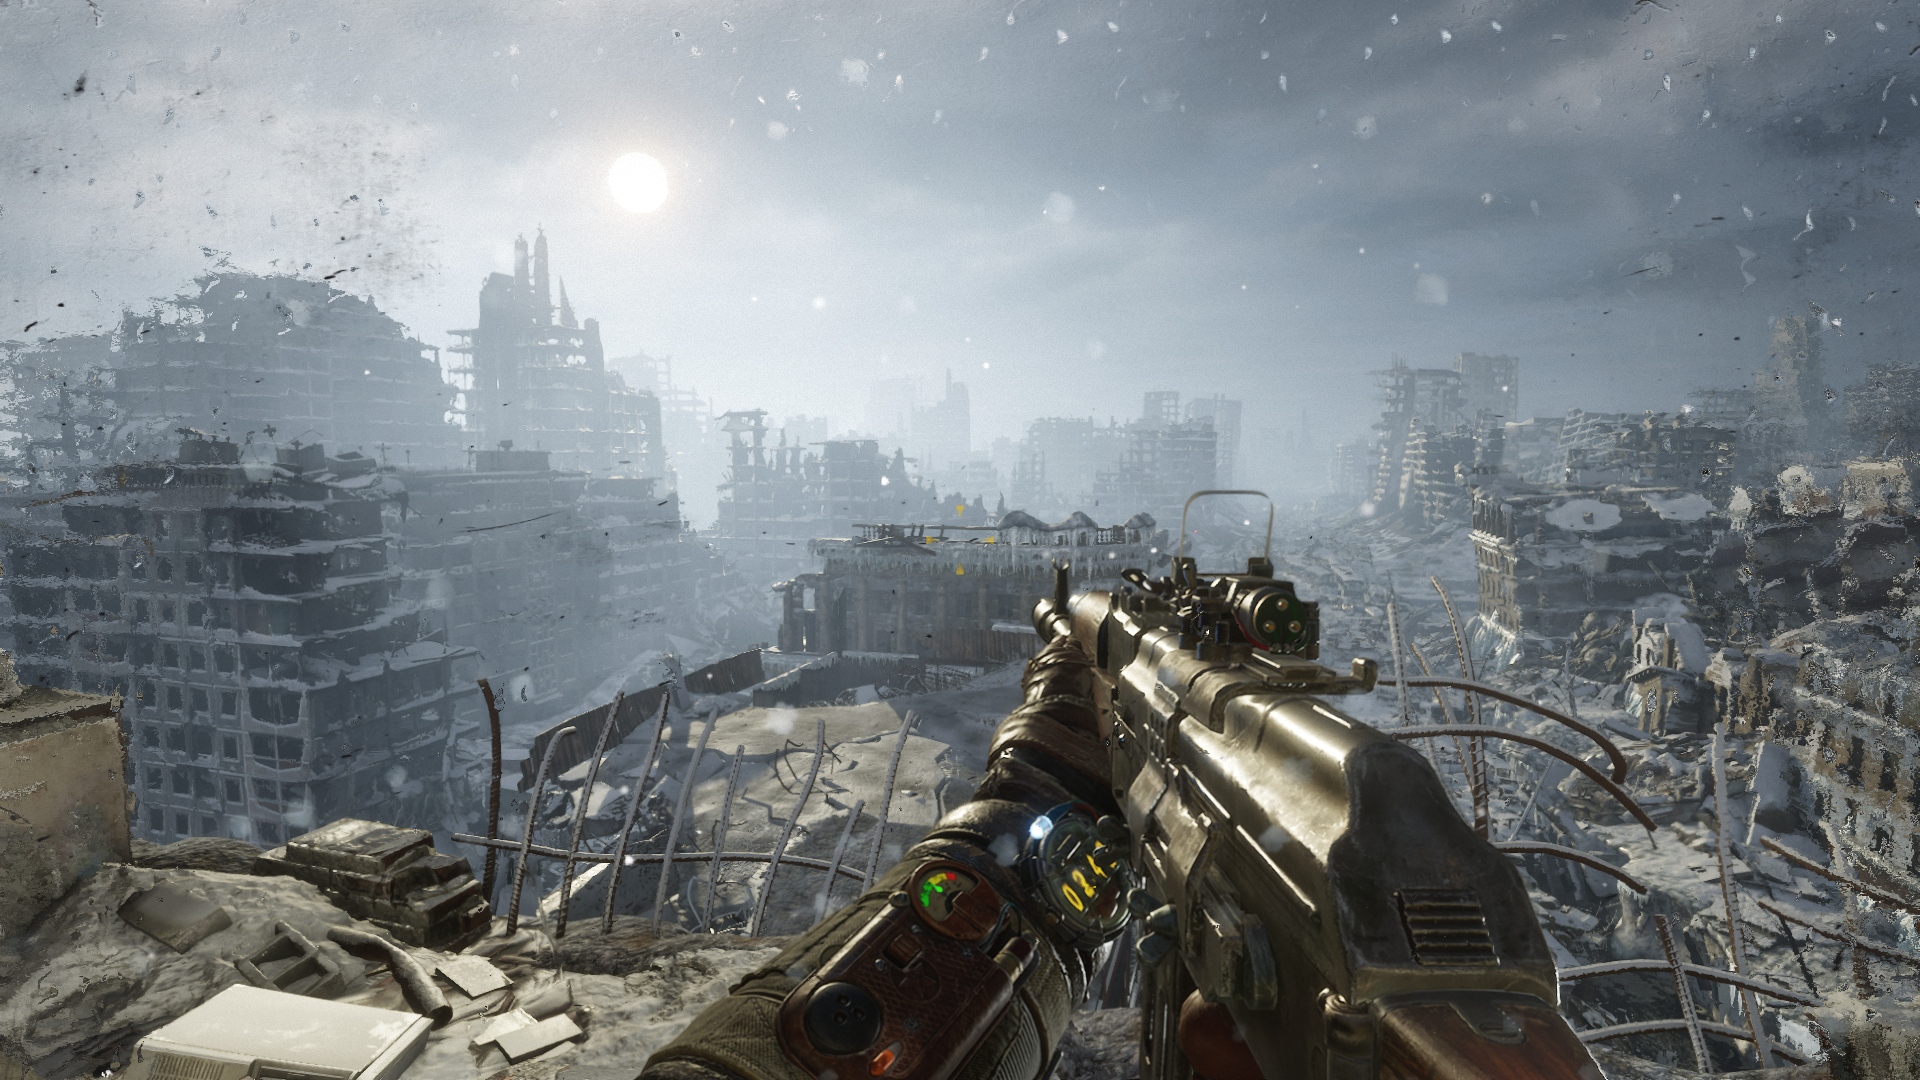 Metro Exodus PC graphics performance: How to get the best settings